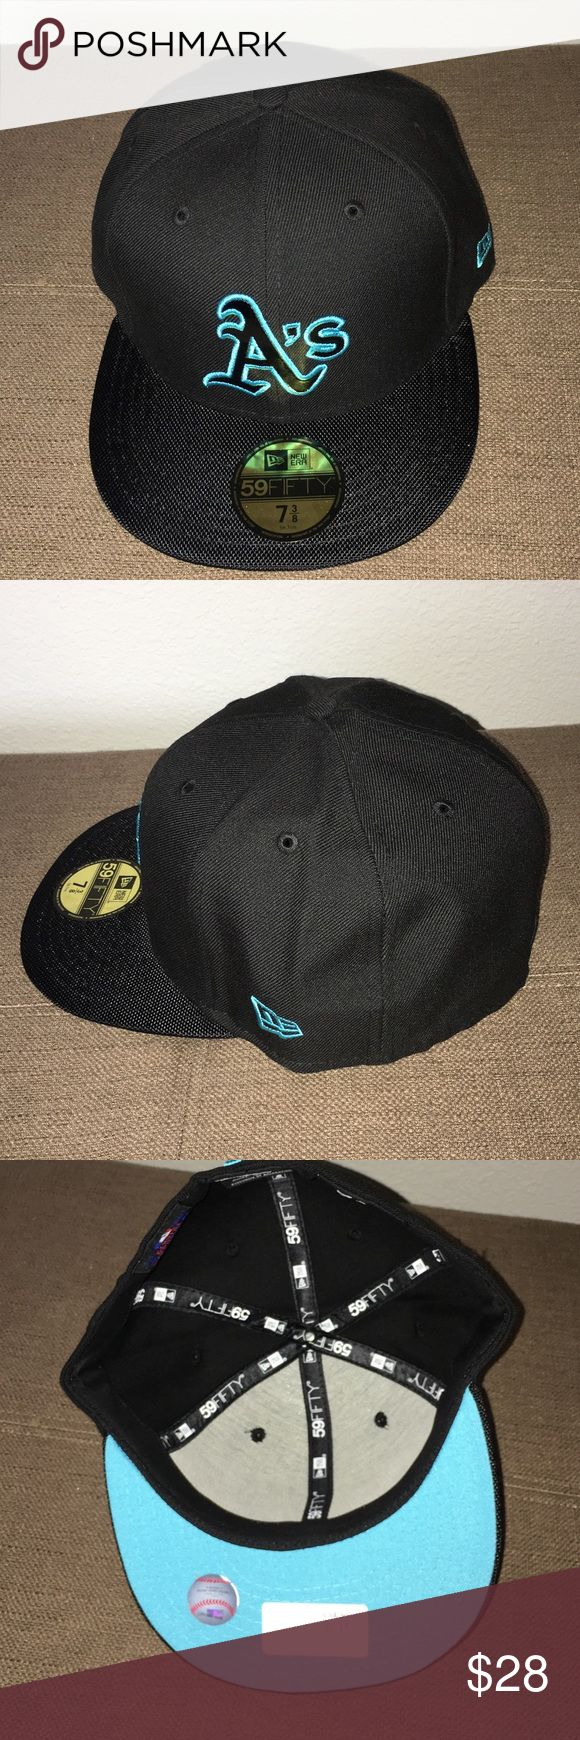 A's Men's Fitted Baseball Cap Brand New A's Men's Fitted Baseball Cap Brand New. Size 7 3/8 New Era Other